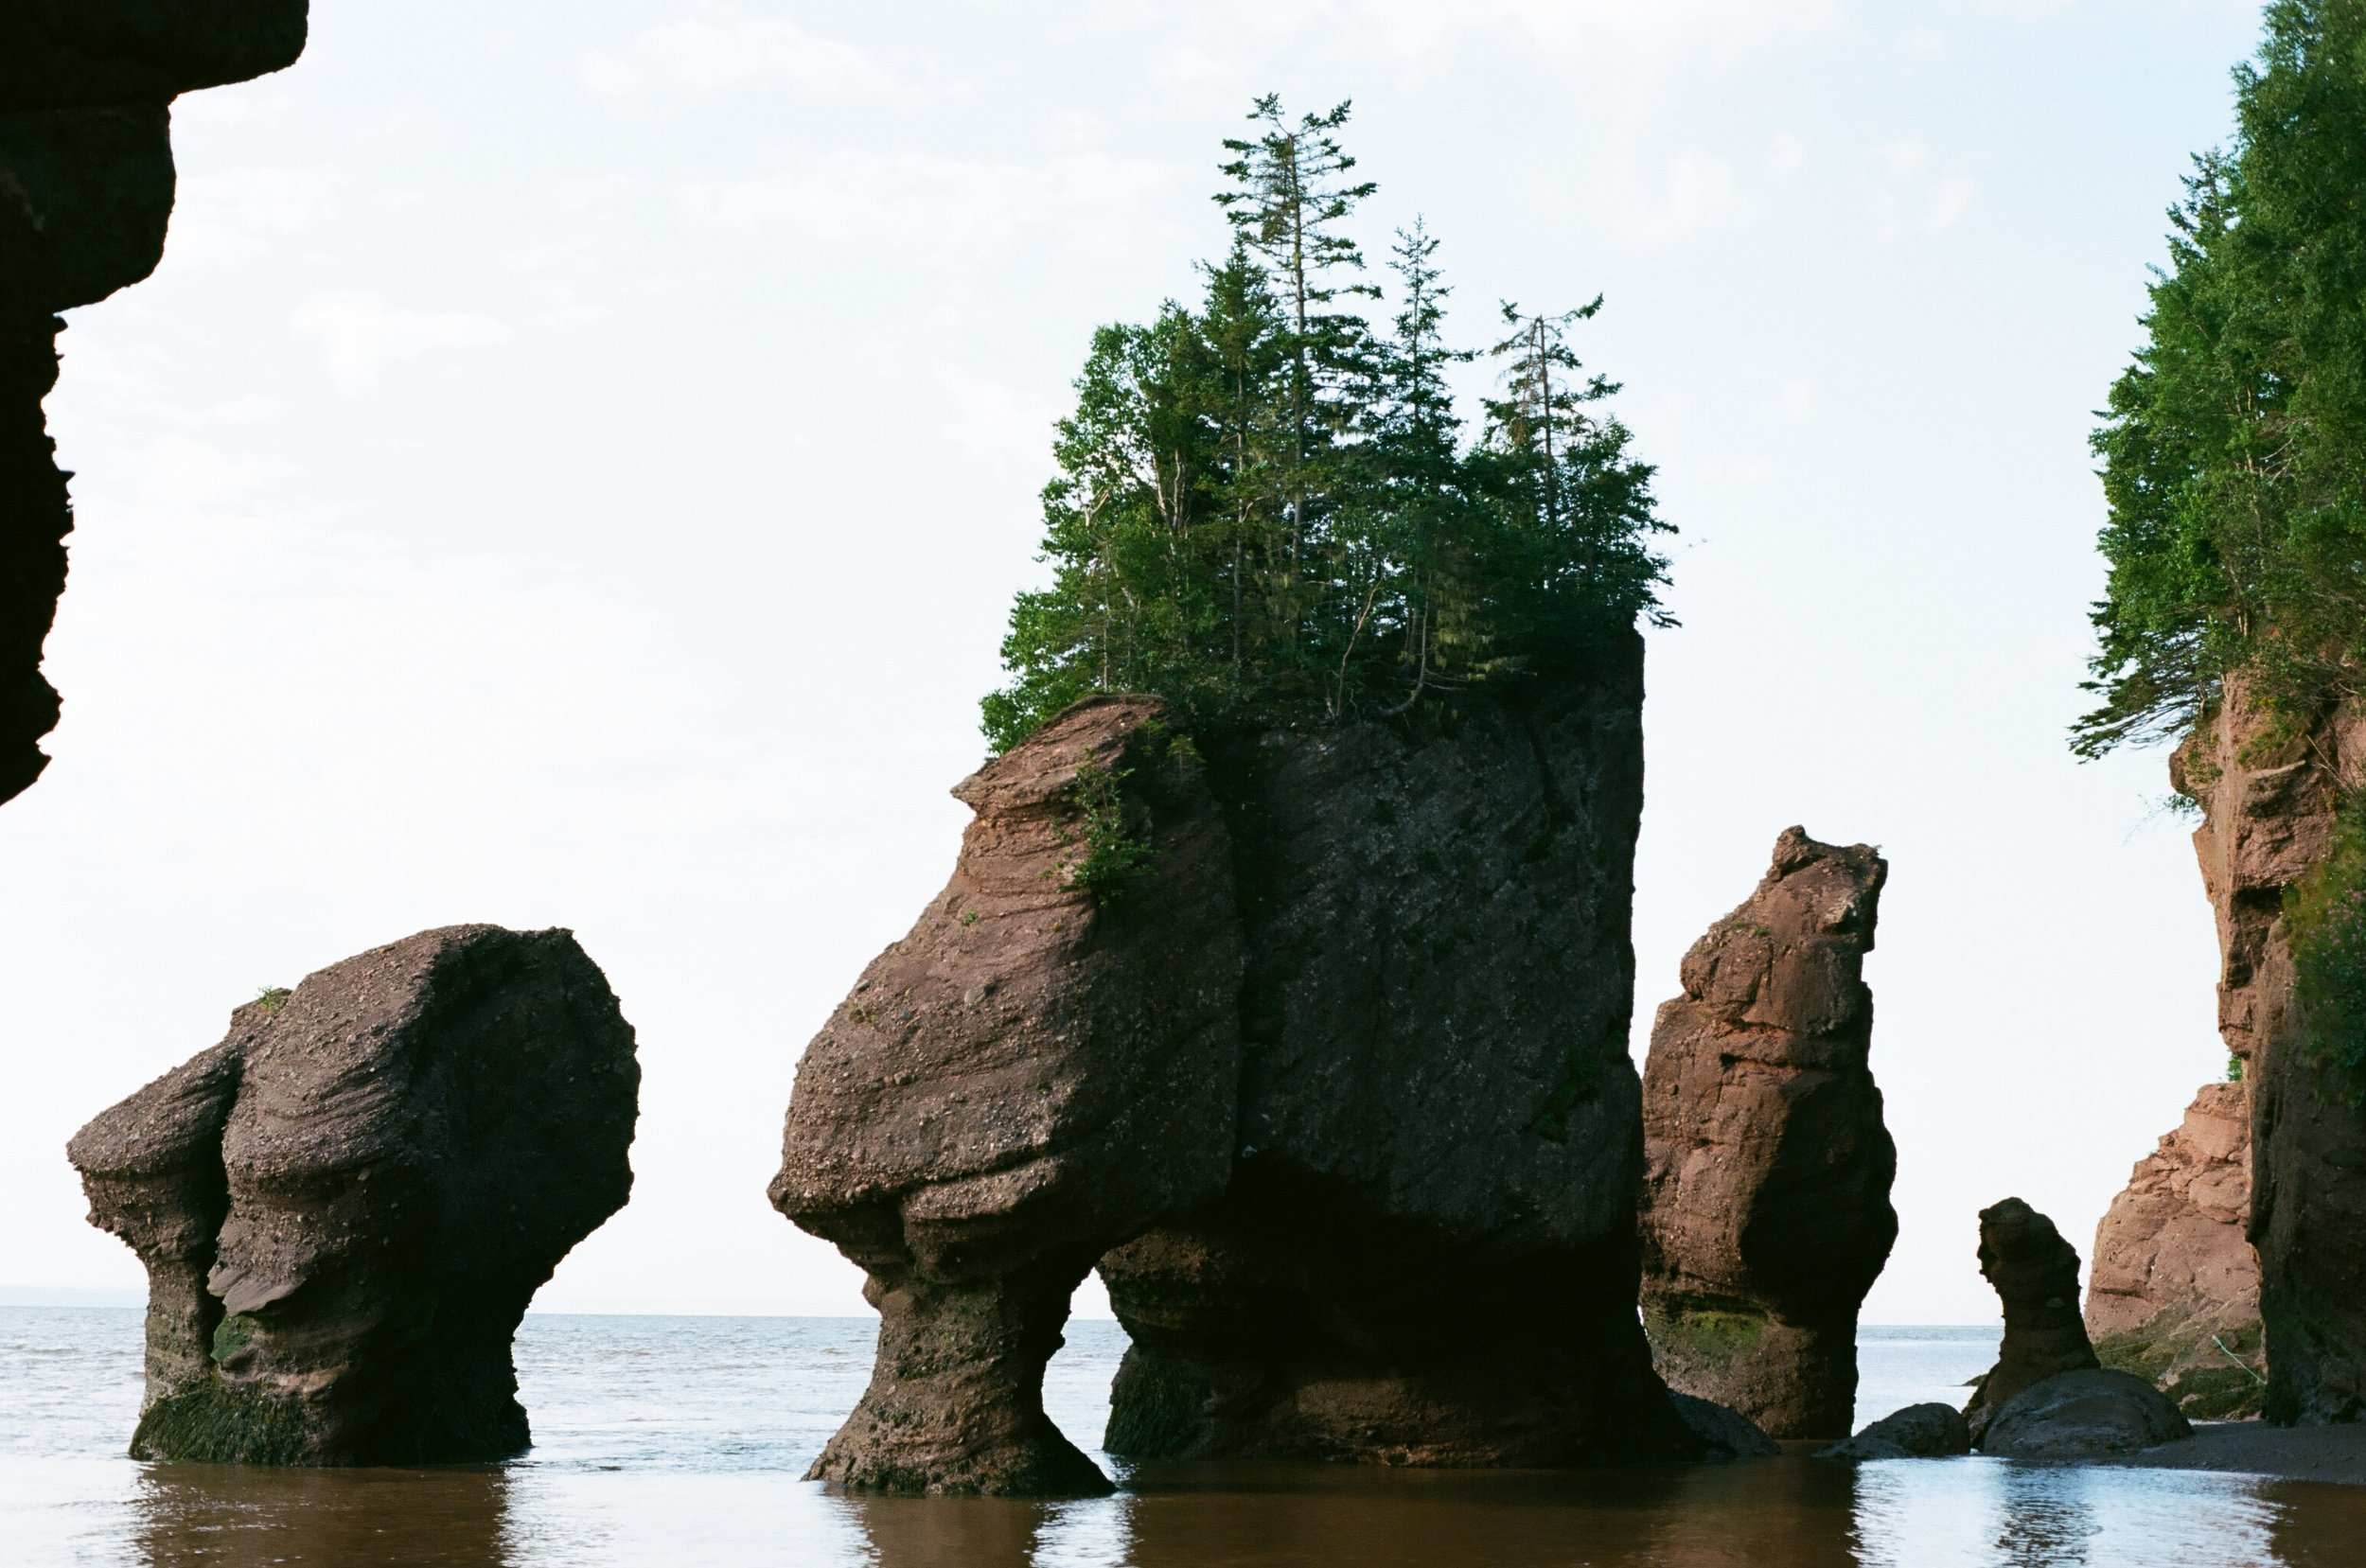 Hopewell Rocks, 35mm